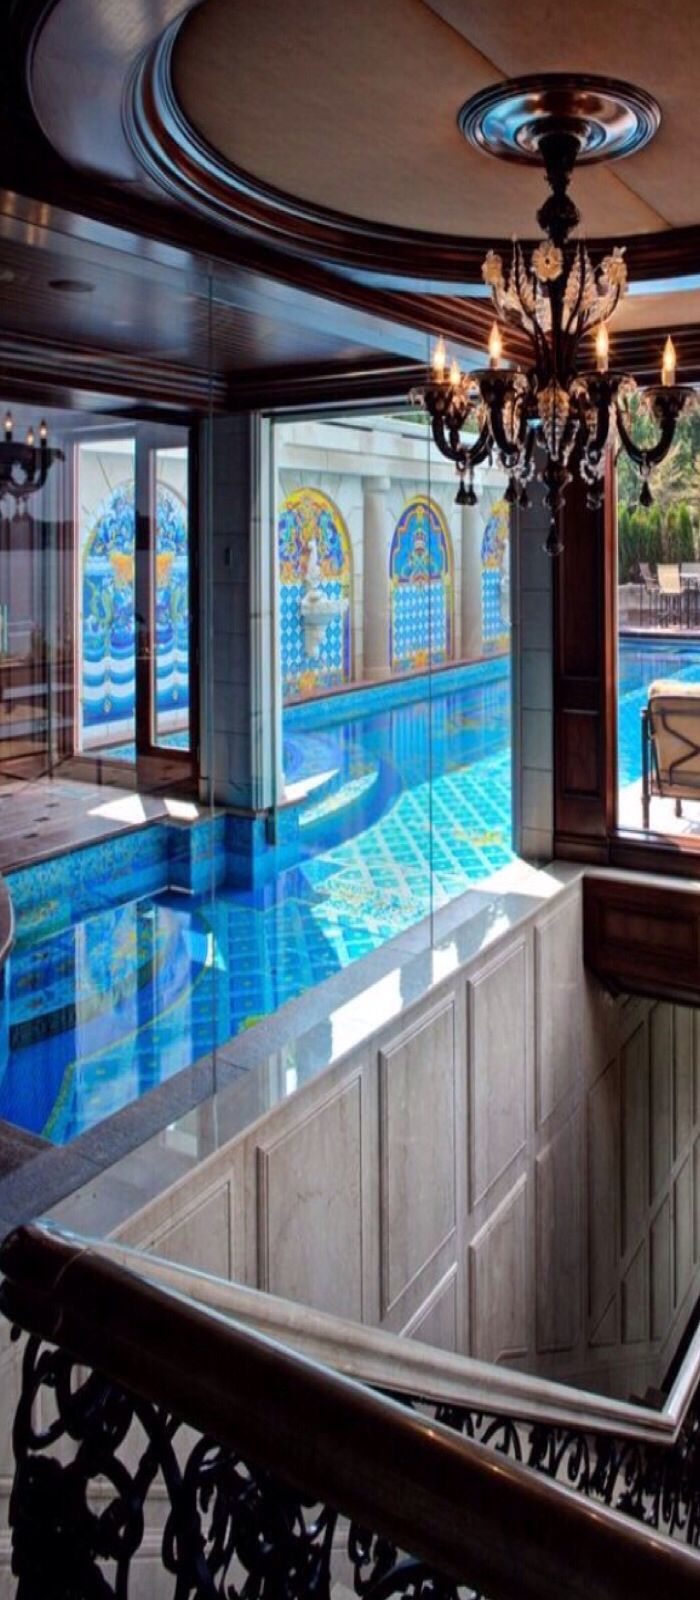 76 best 'home-indoor pools & spa' images on pinterest | indoor